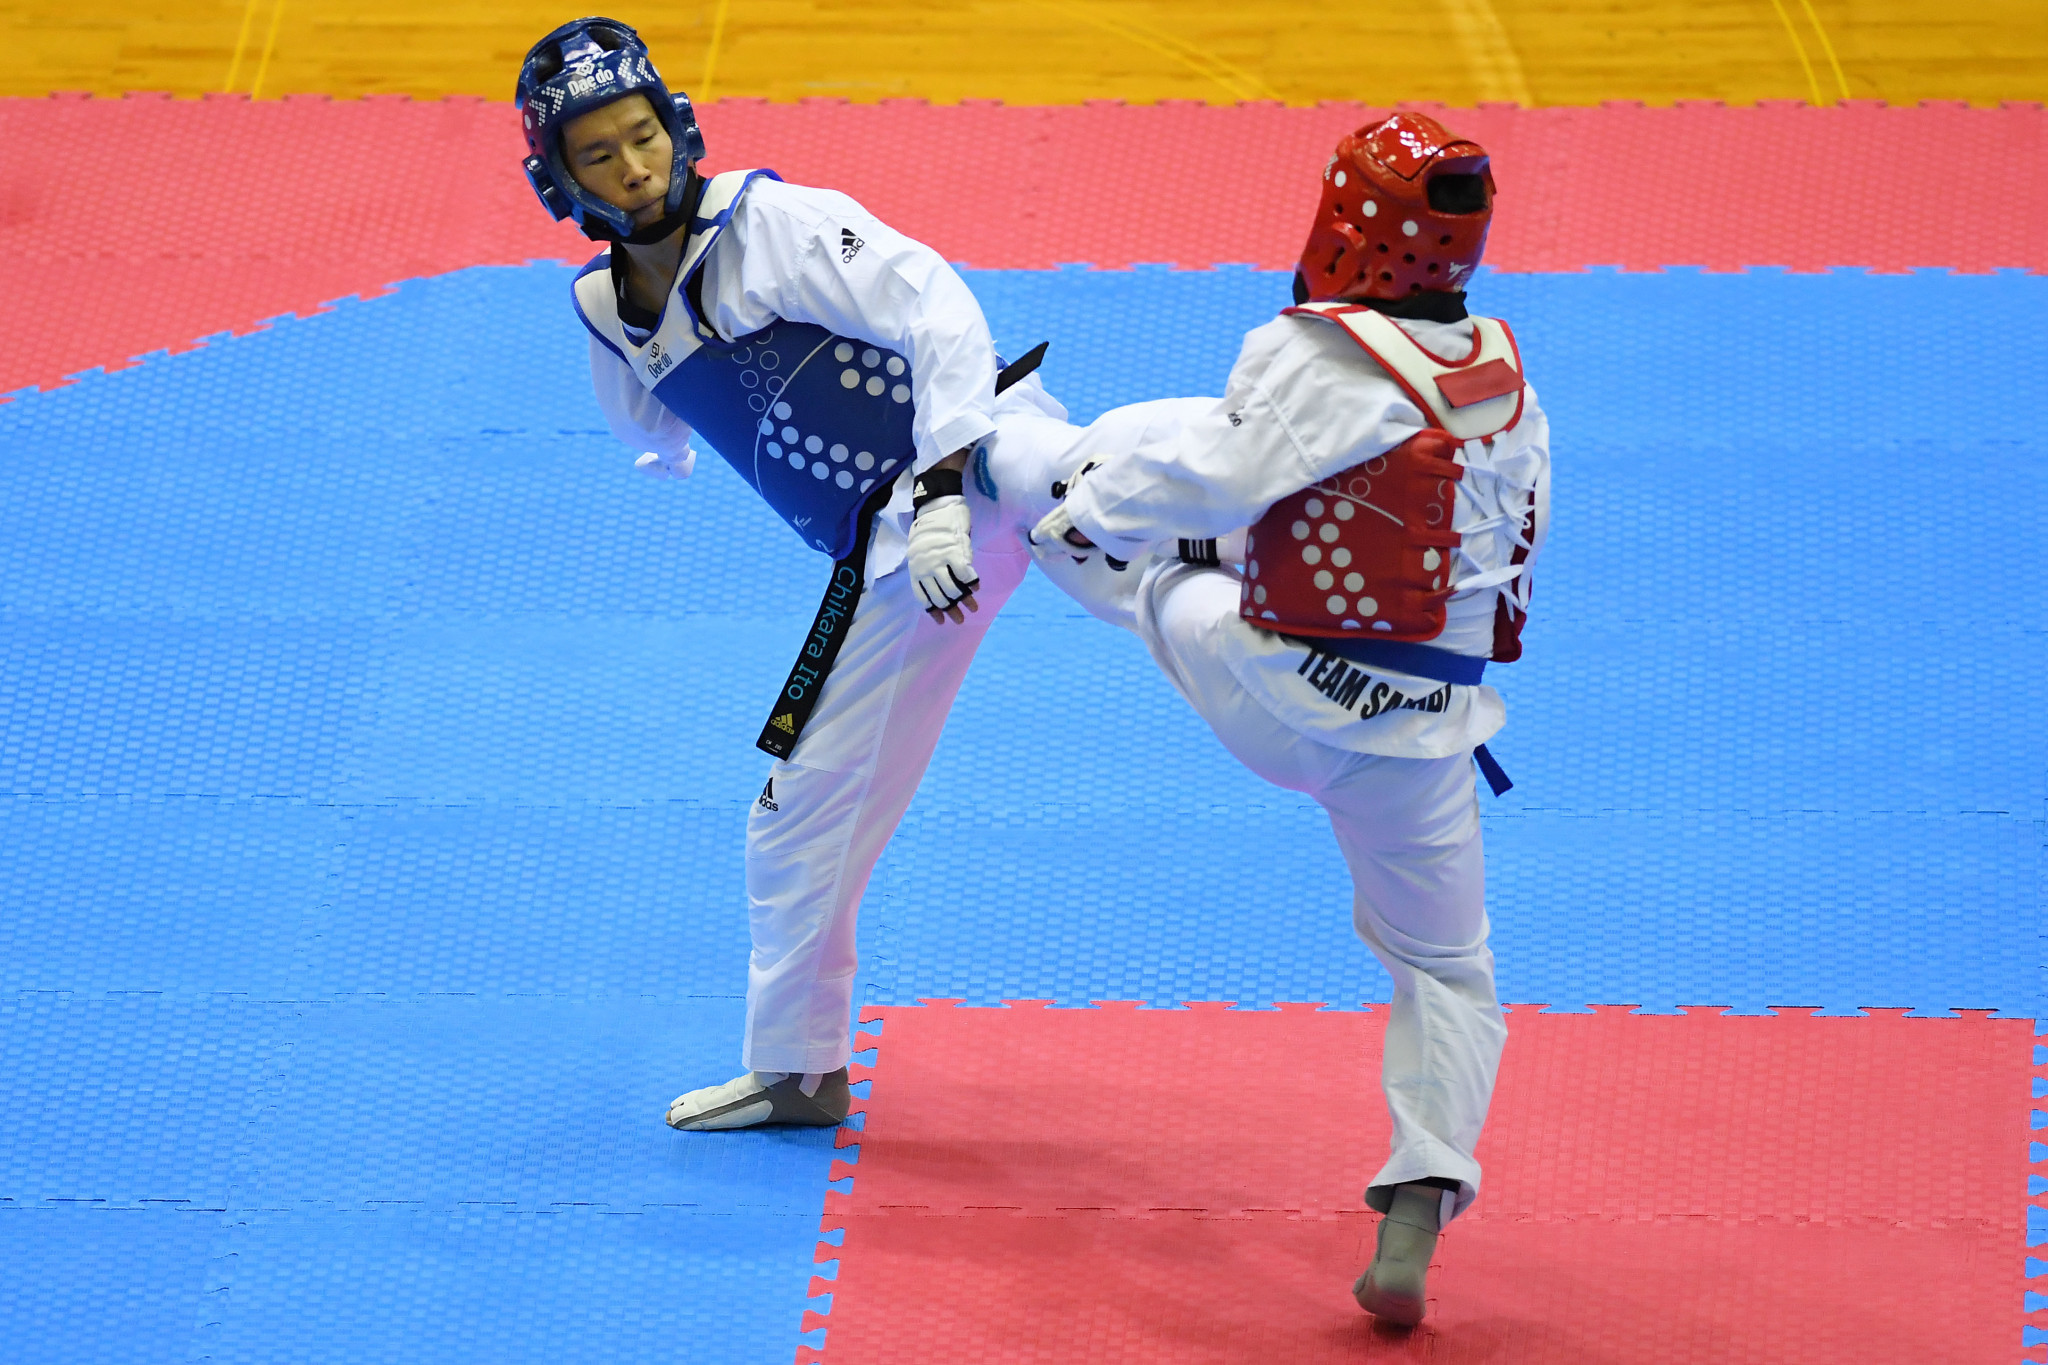 World Taekwondo reconfirm qualification procedure for sport's Paralympic debut